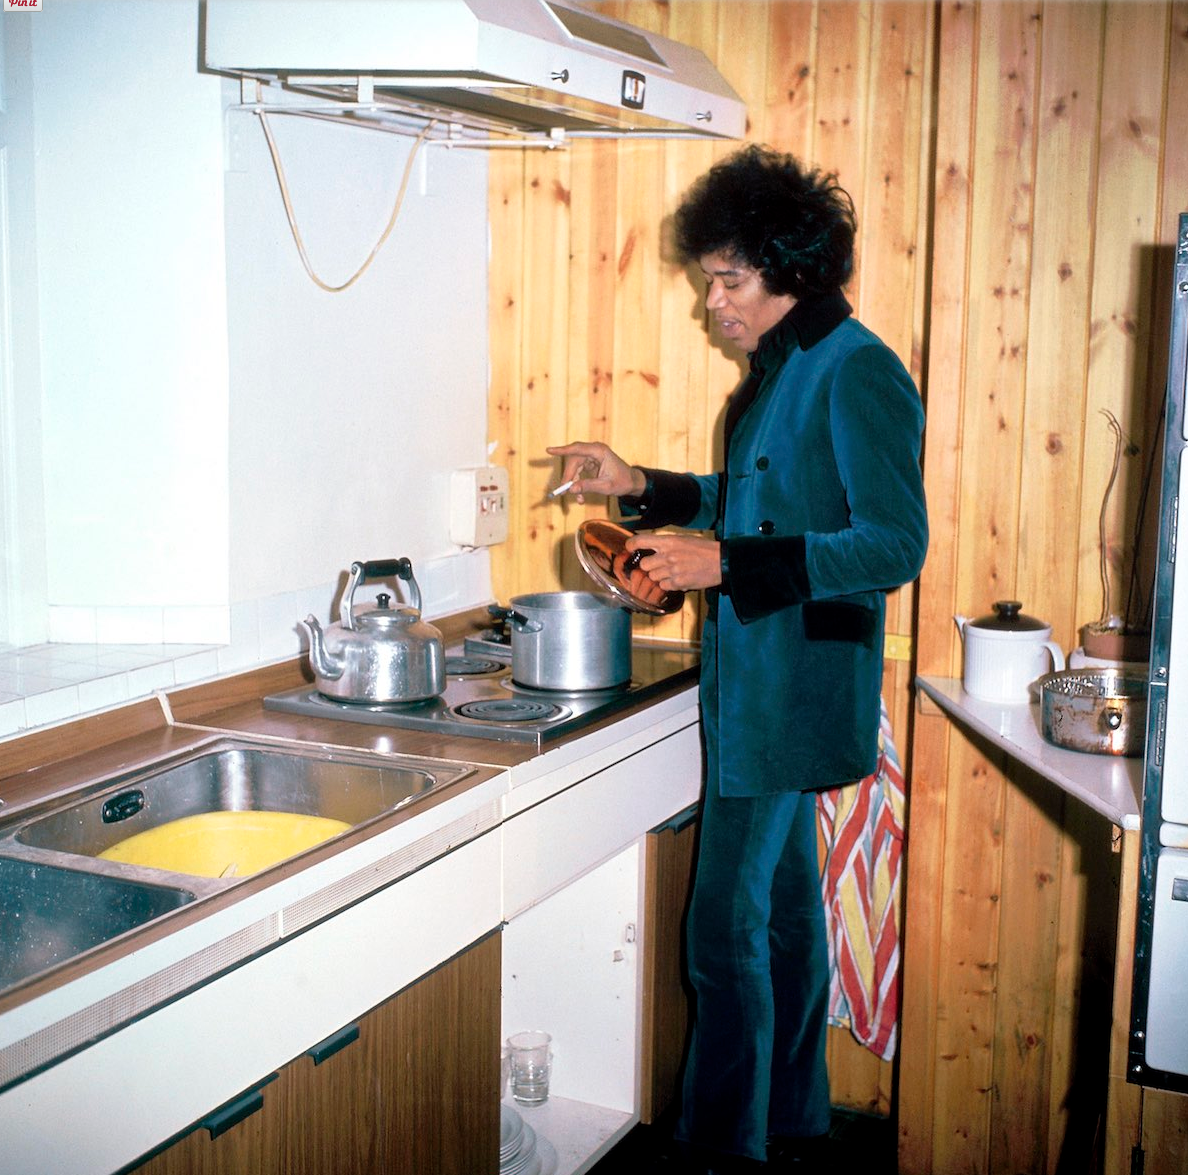 asvof-2015-04-17-1967_hanging_out_with_hendrix_jimi_puts_the_kettle_on_at_34_montagu_square_by_amanda_uren-diane_pernet-1134848977.png